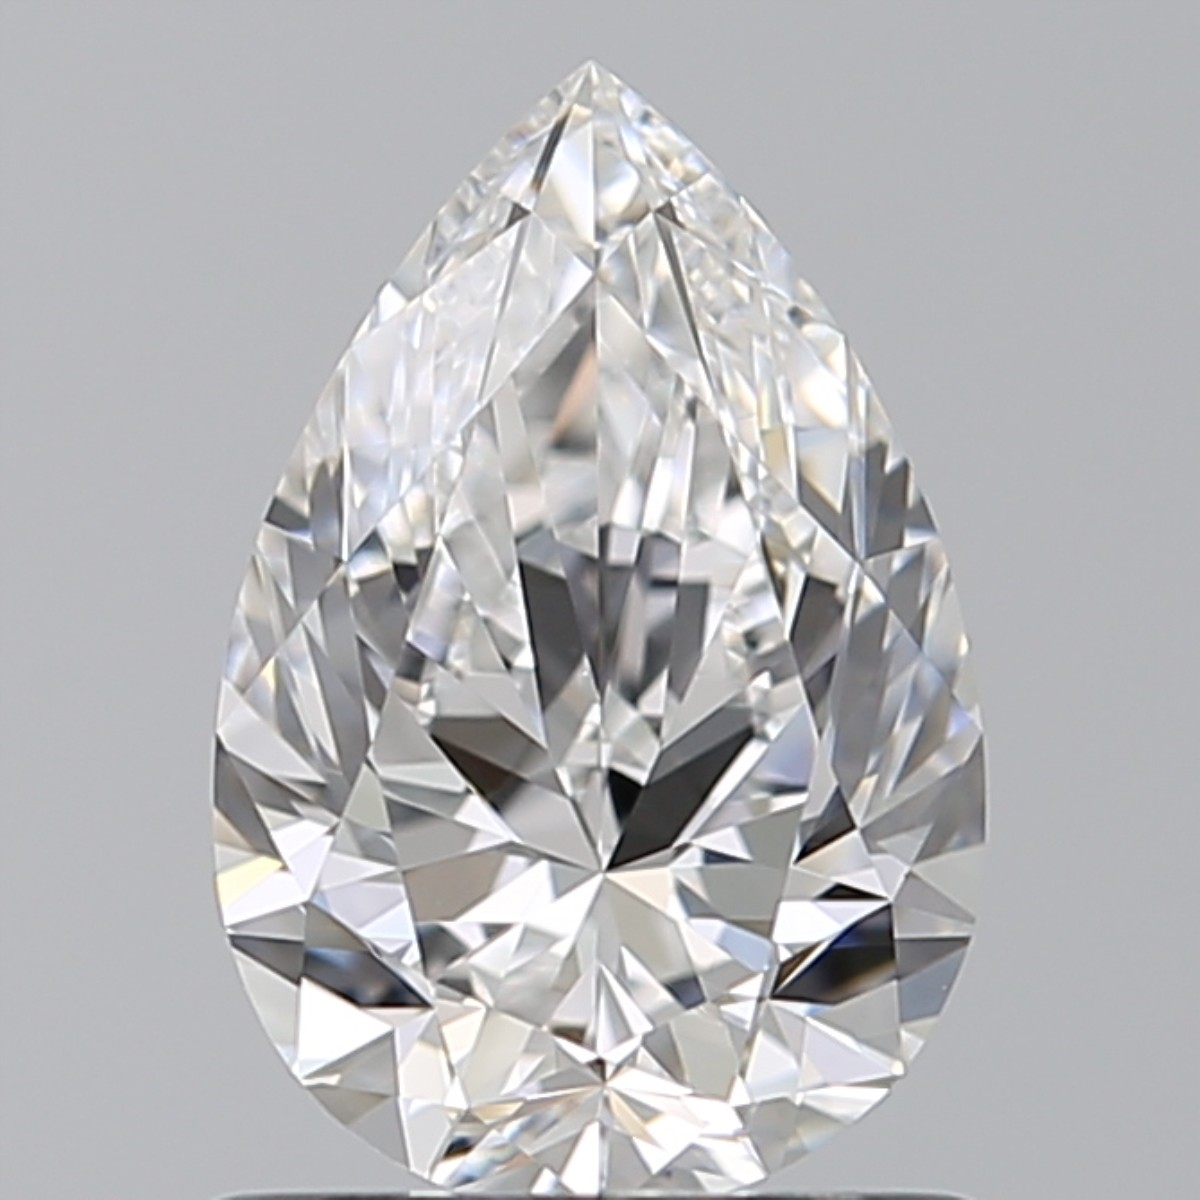 1.01 Carat Pear Diamond (E/VS1)